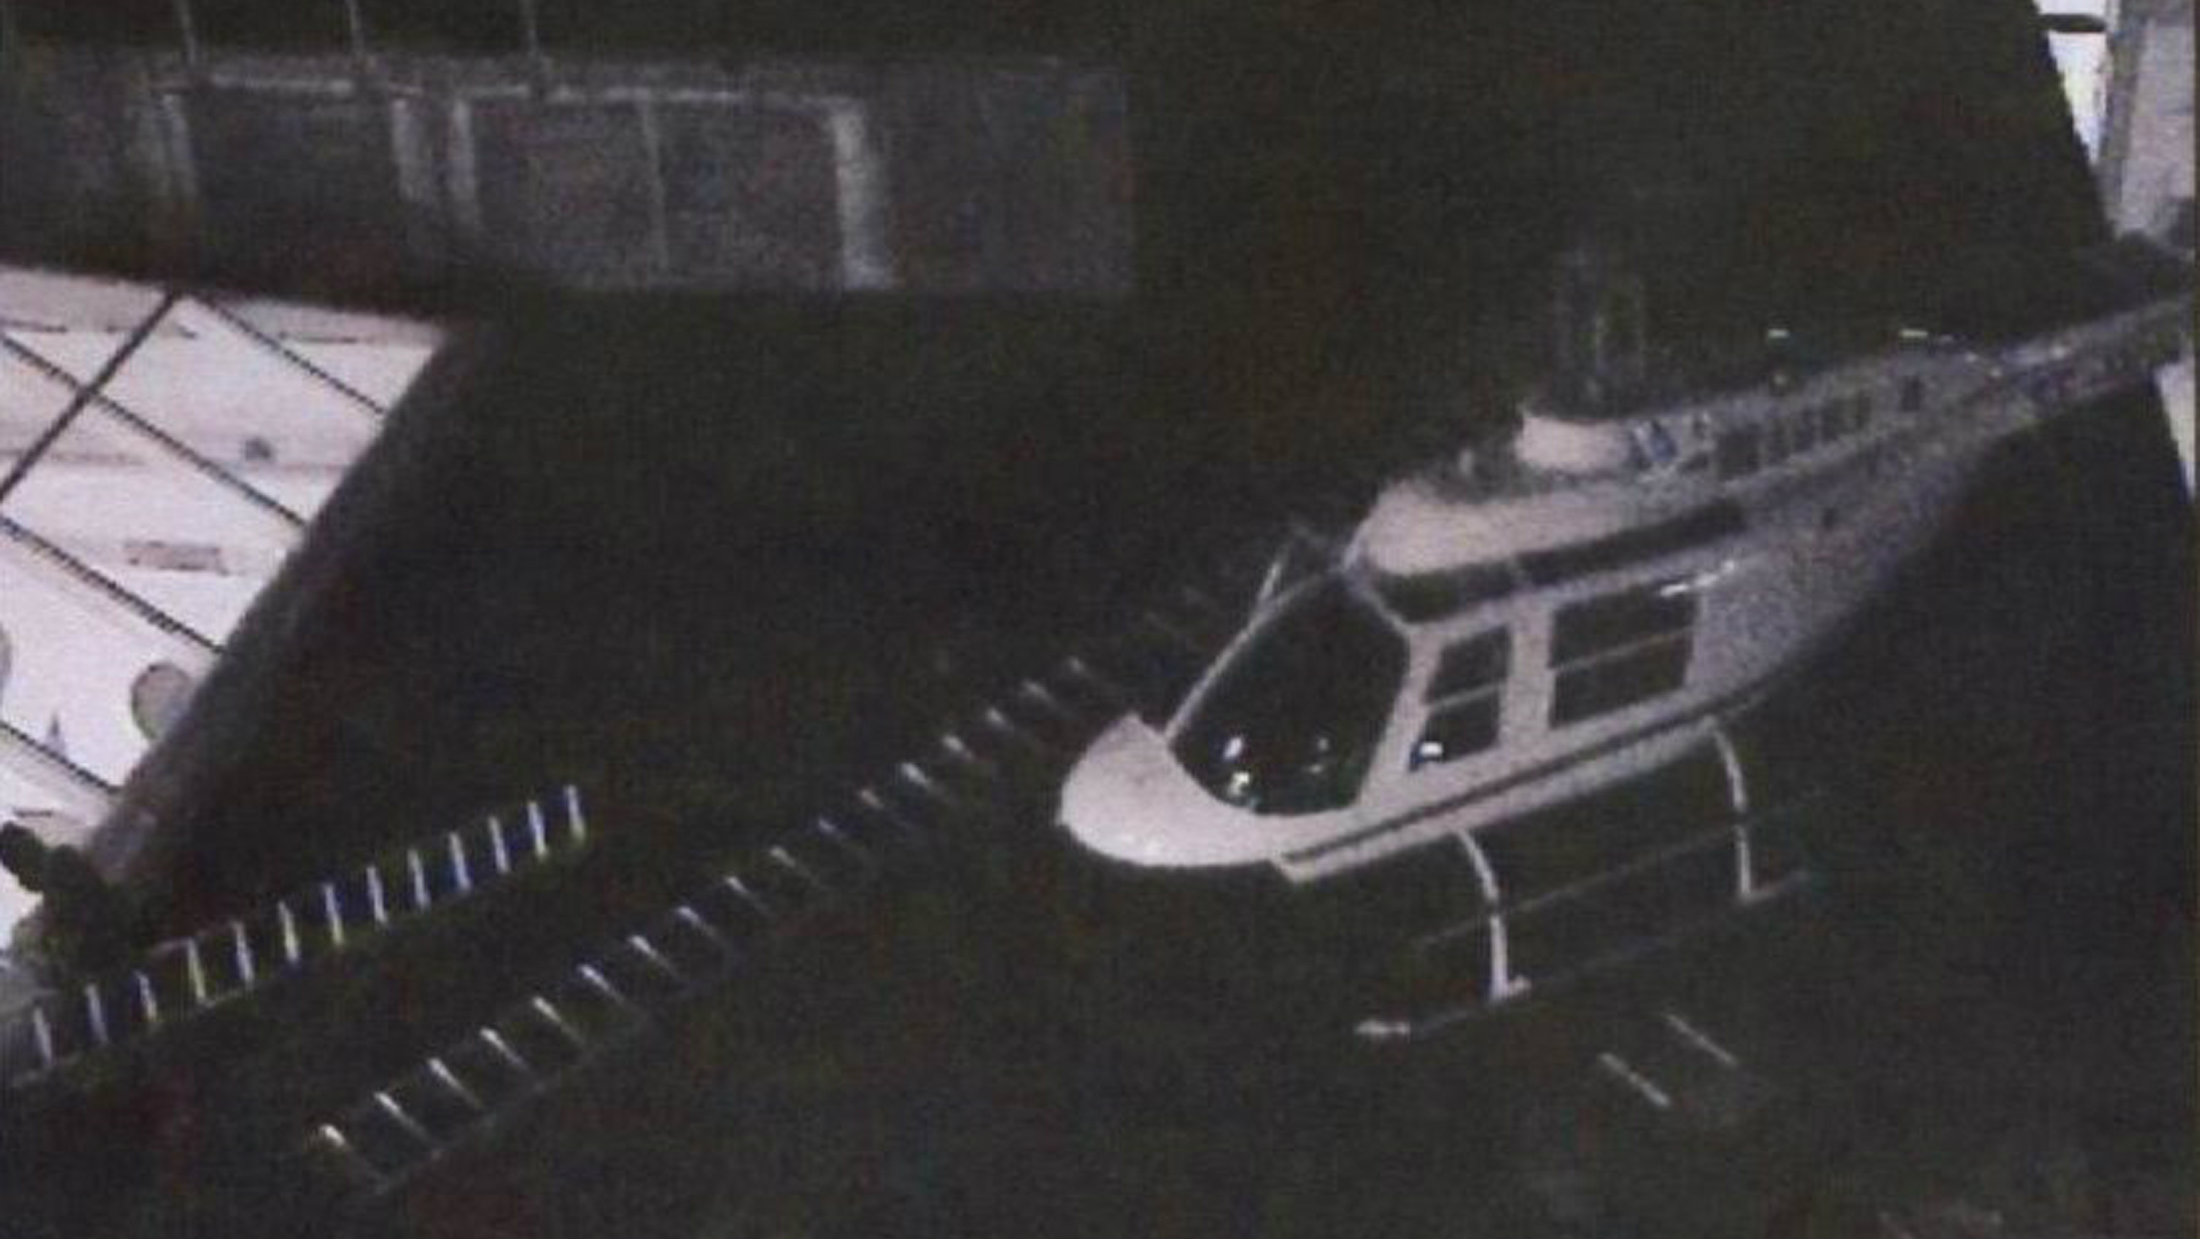 A file CCTV image dated September 23, 2009, made available by Swedish Police July 19, 2010, shows a stolen helicopter on the roof of the G4S cash depot in Stockholm. Swedish prosecutors on Monday charged ten men with theft for stealing 39 million Swedish kronor (four million euro) from the Stockholm cash depot last year in a helicopter heist. Five men were charged with aggravated robbery and five with complicity. Two other suspects remain at large. REUTERS/Police Handout (SWEDEN) NO THIRD PARTY SALES. NOT FOR USE BY REUTERS THIRD PARTY DISTRIBUTORS. SWEDEN OUT. NO COMMERCIAL OR EDITORIAL SALES IN SWEDEN. QUALITY FROM SOURCE